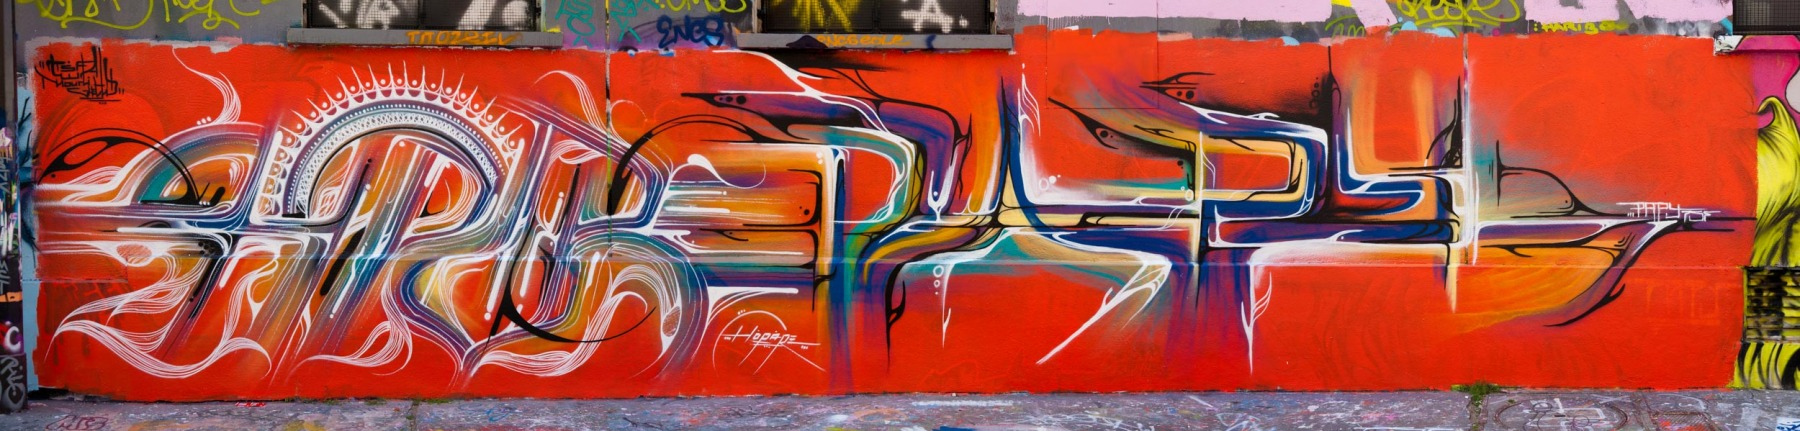 Hopare - Avril 2011